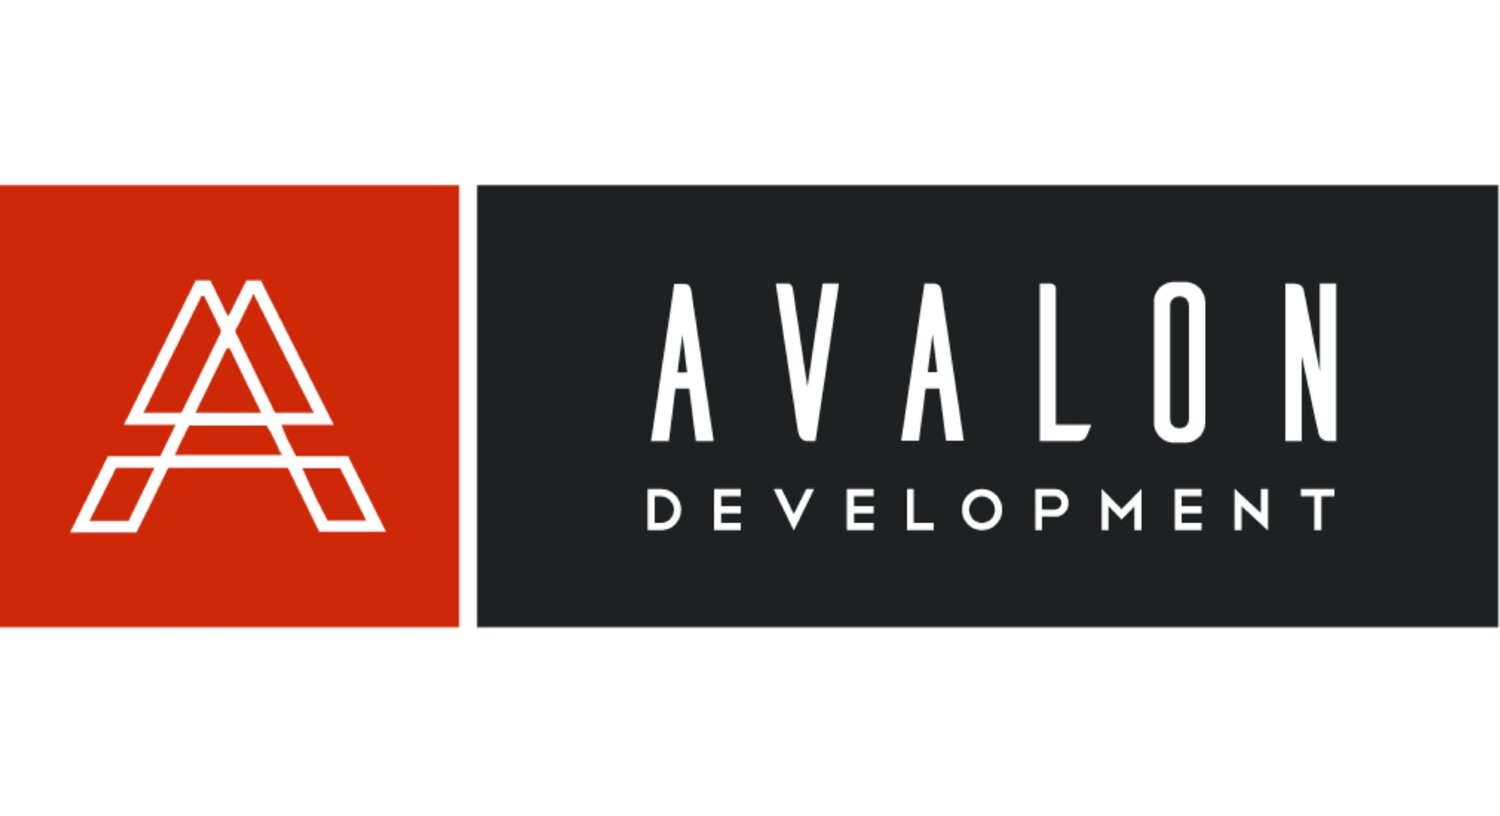 Avalon Development